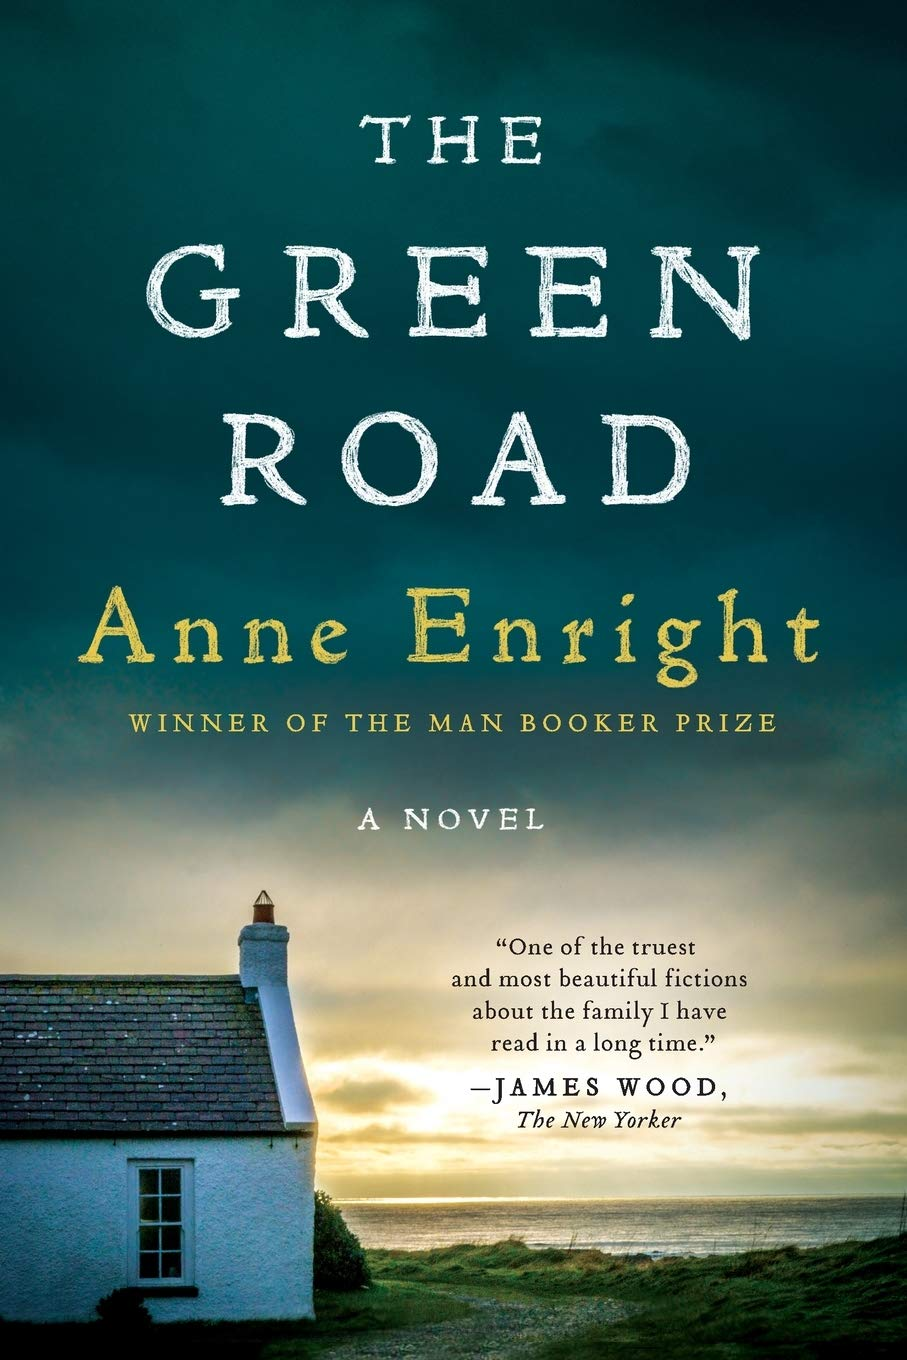 Amazon.com: The Green Road: A Novel (9780393352801): Enright, Anne: Books